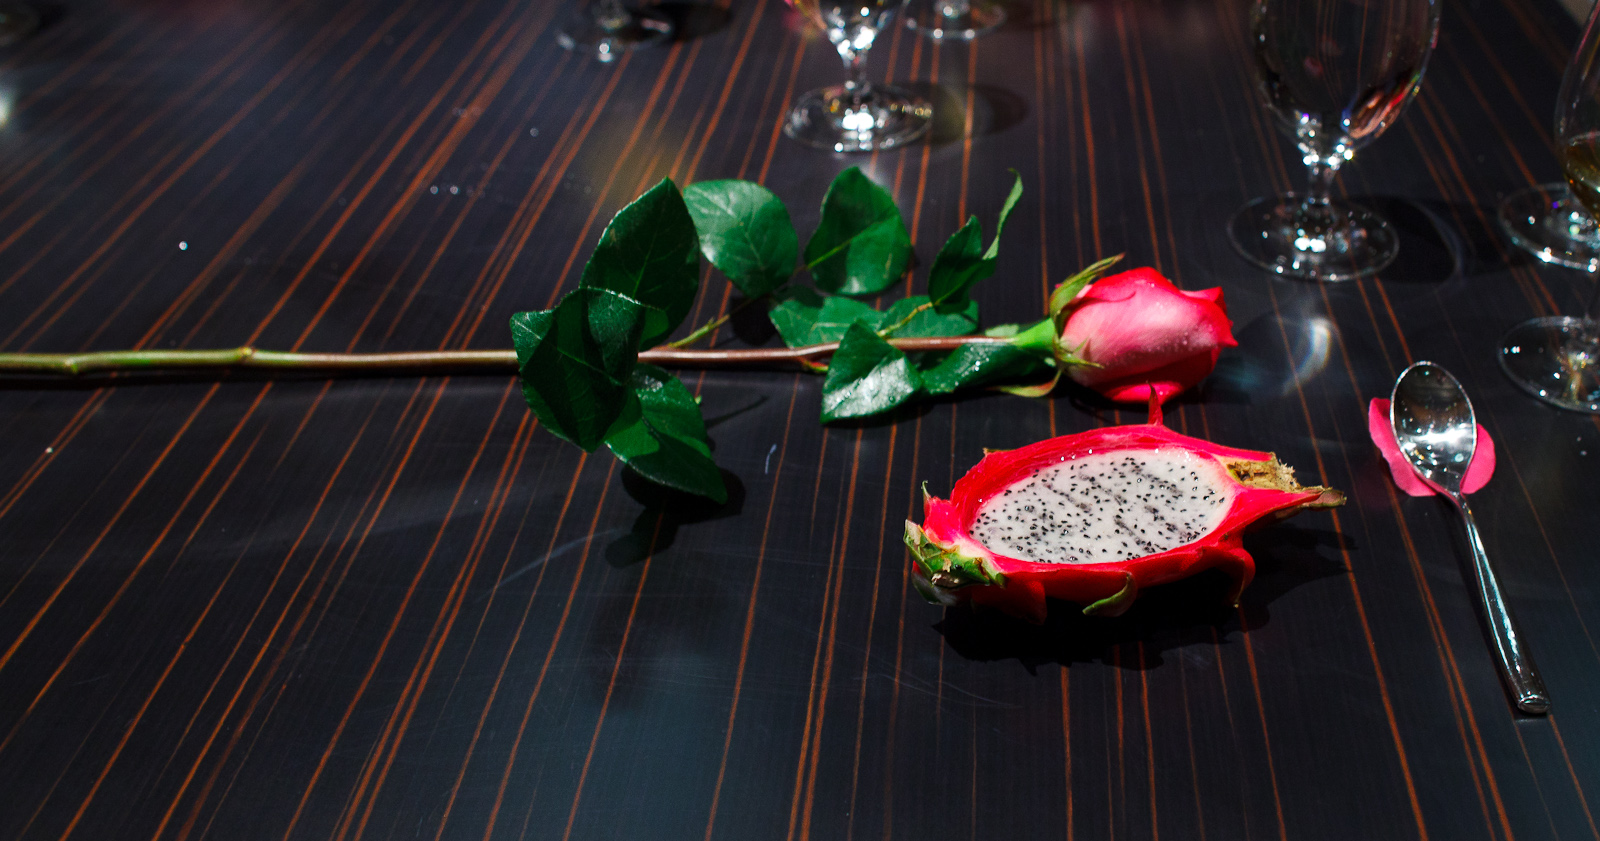 8th Course: Dragon fruit with rose